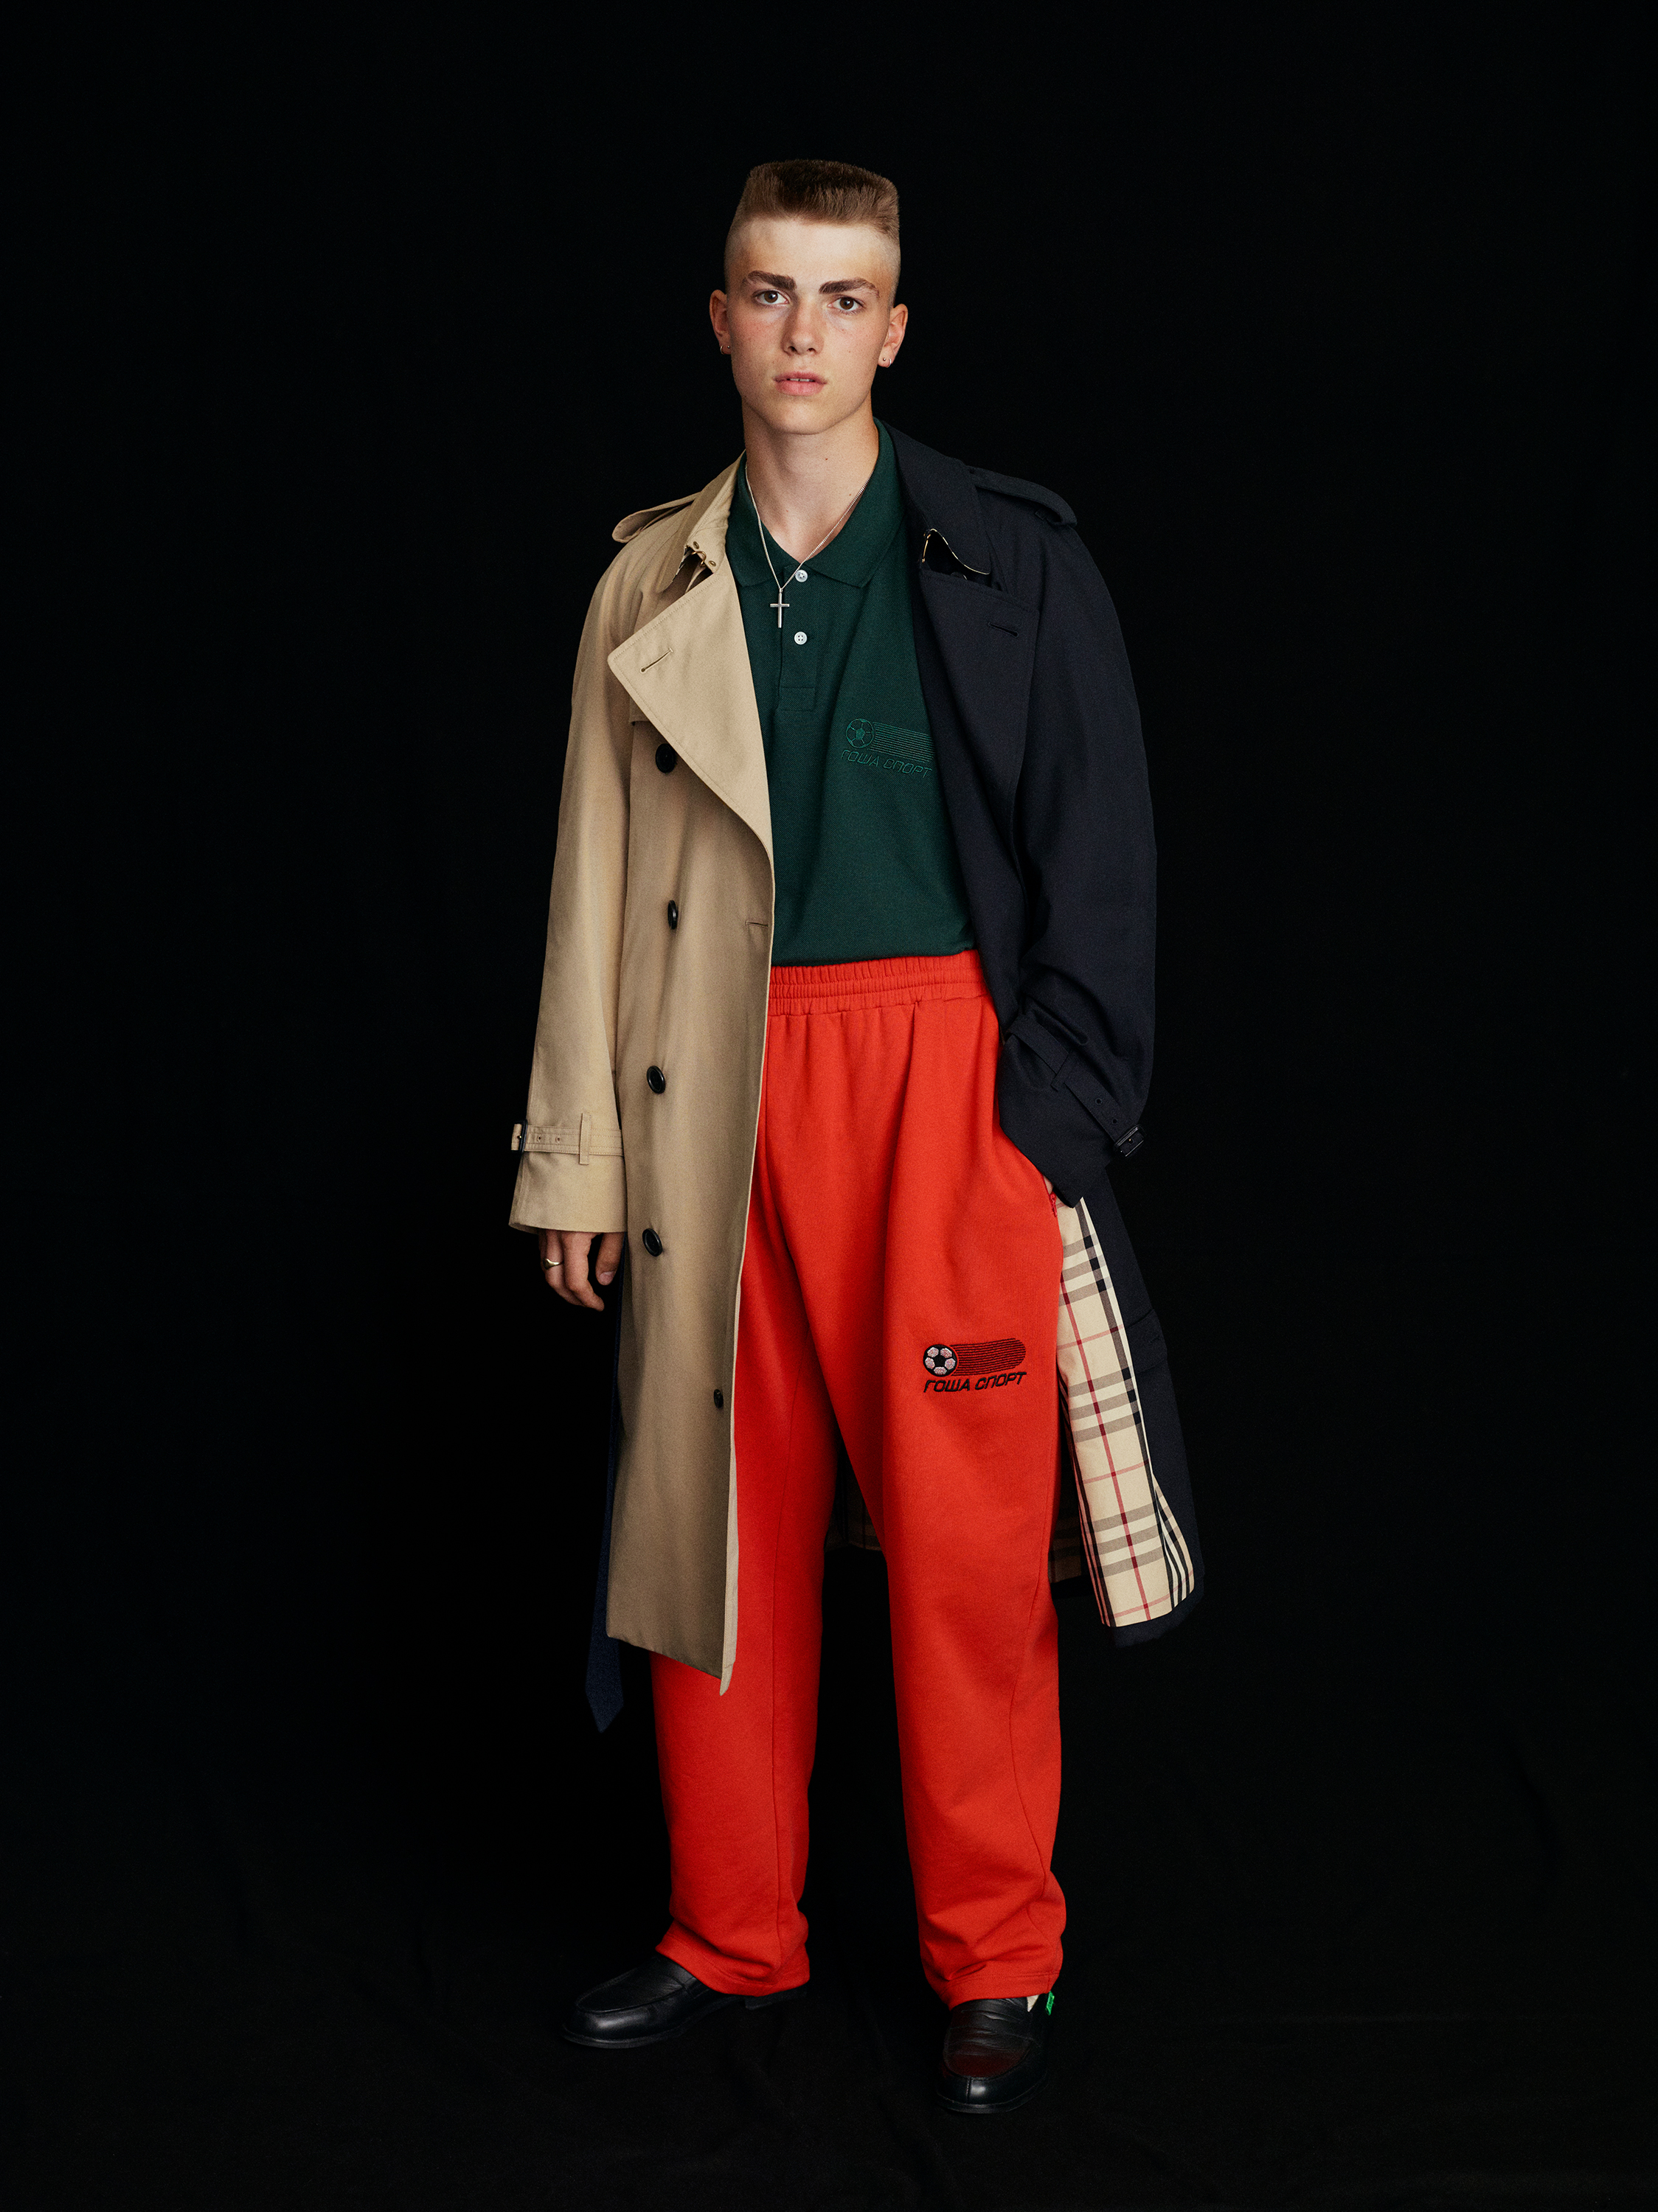 ff8477bf1 gosha rubchinskiy's burberry capsule collection is finally here - i-D